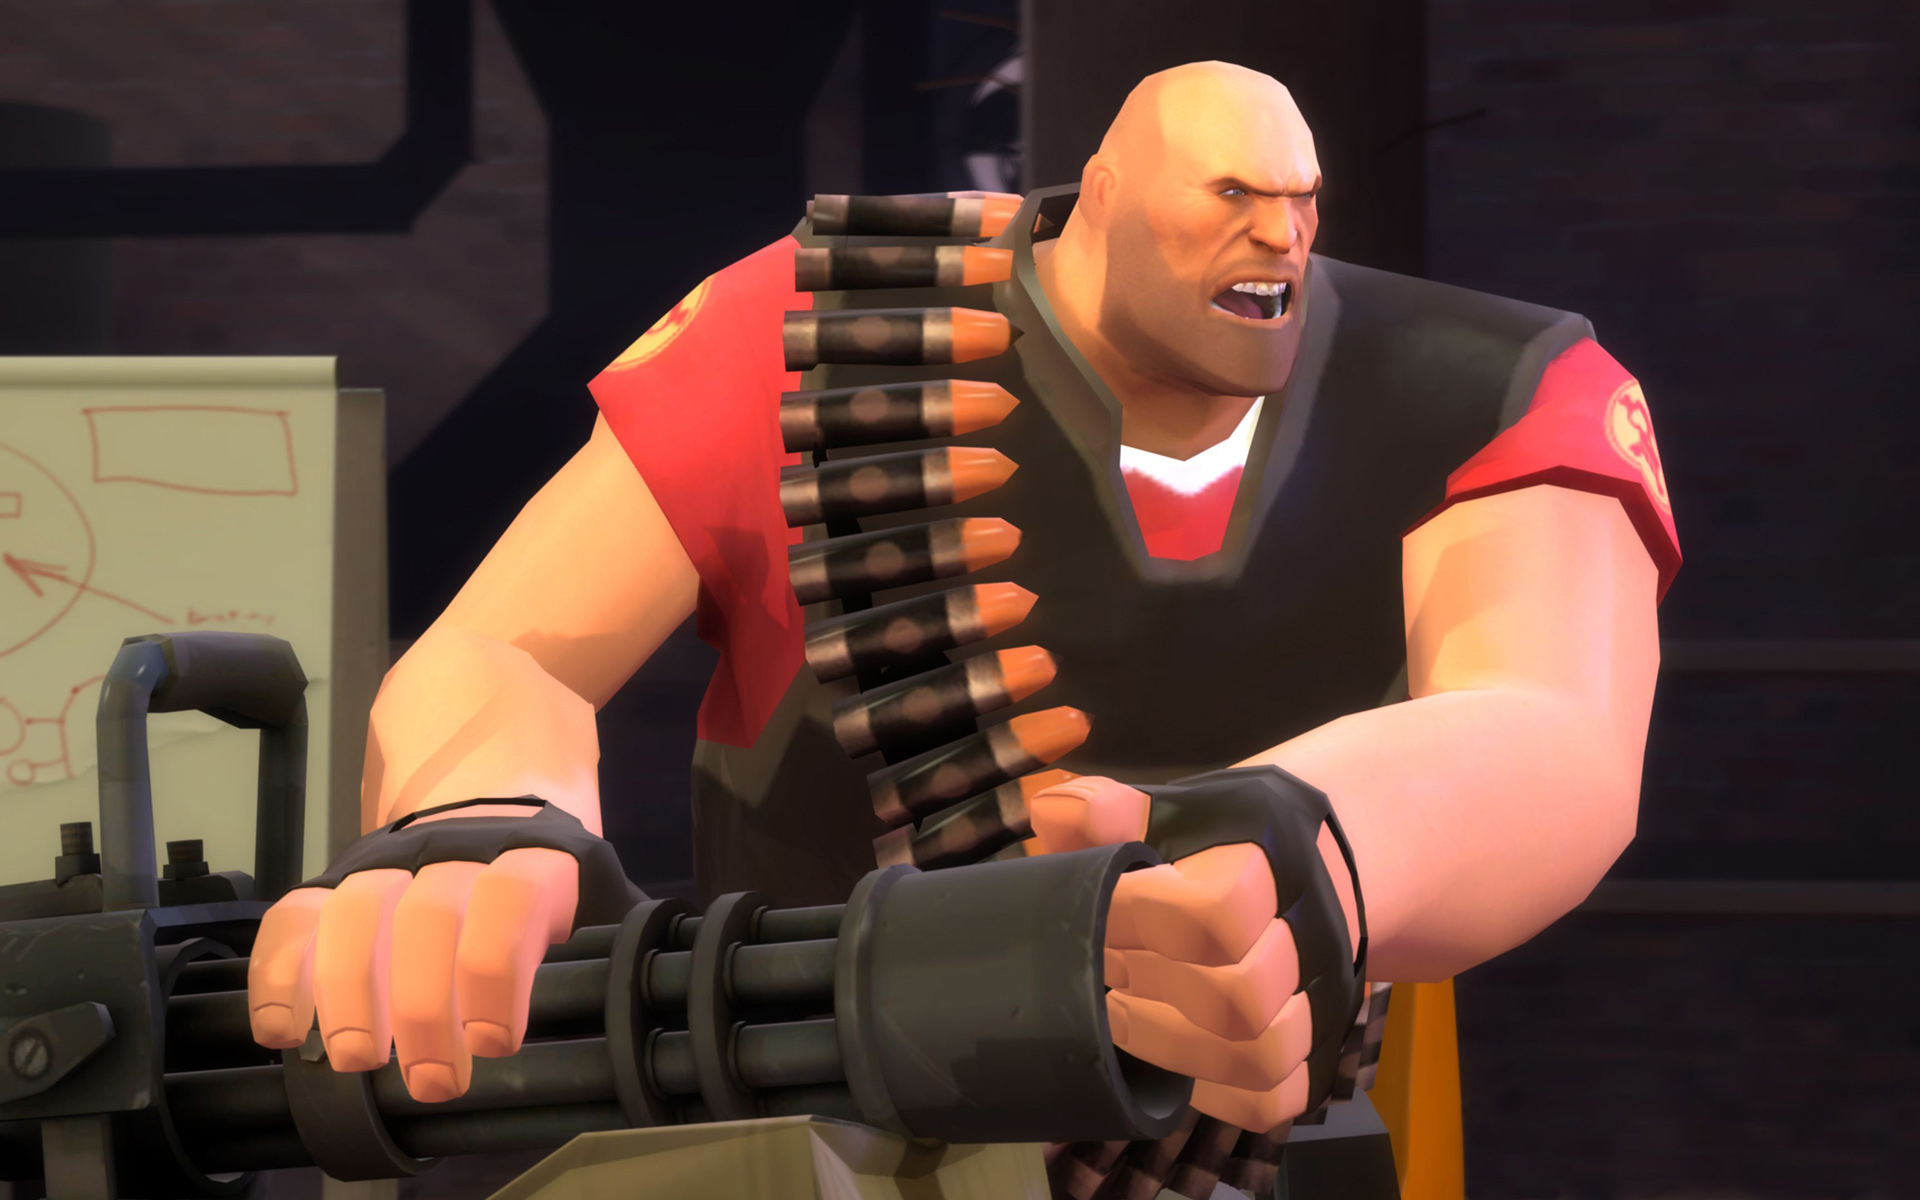 heavy weapons guy gun HD Wallpaper